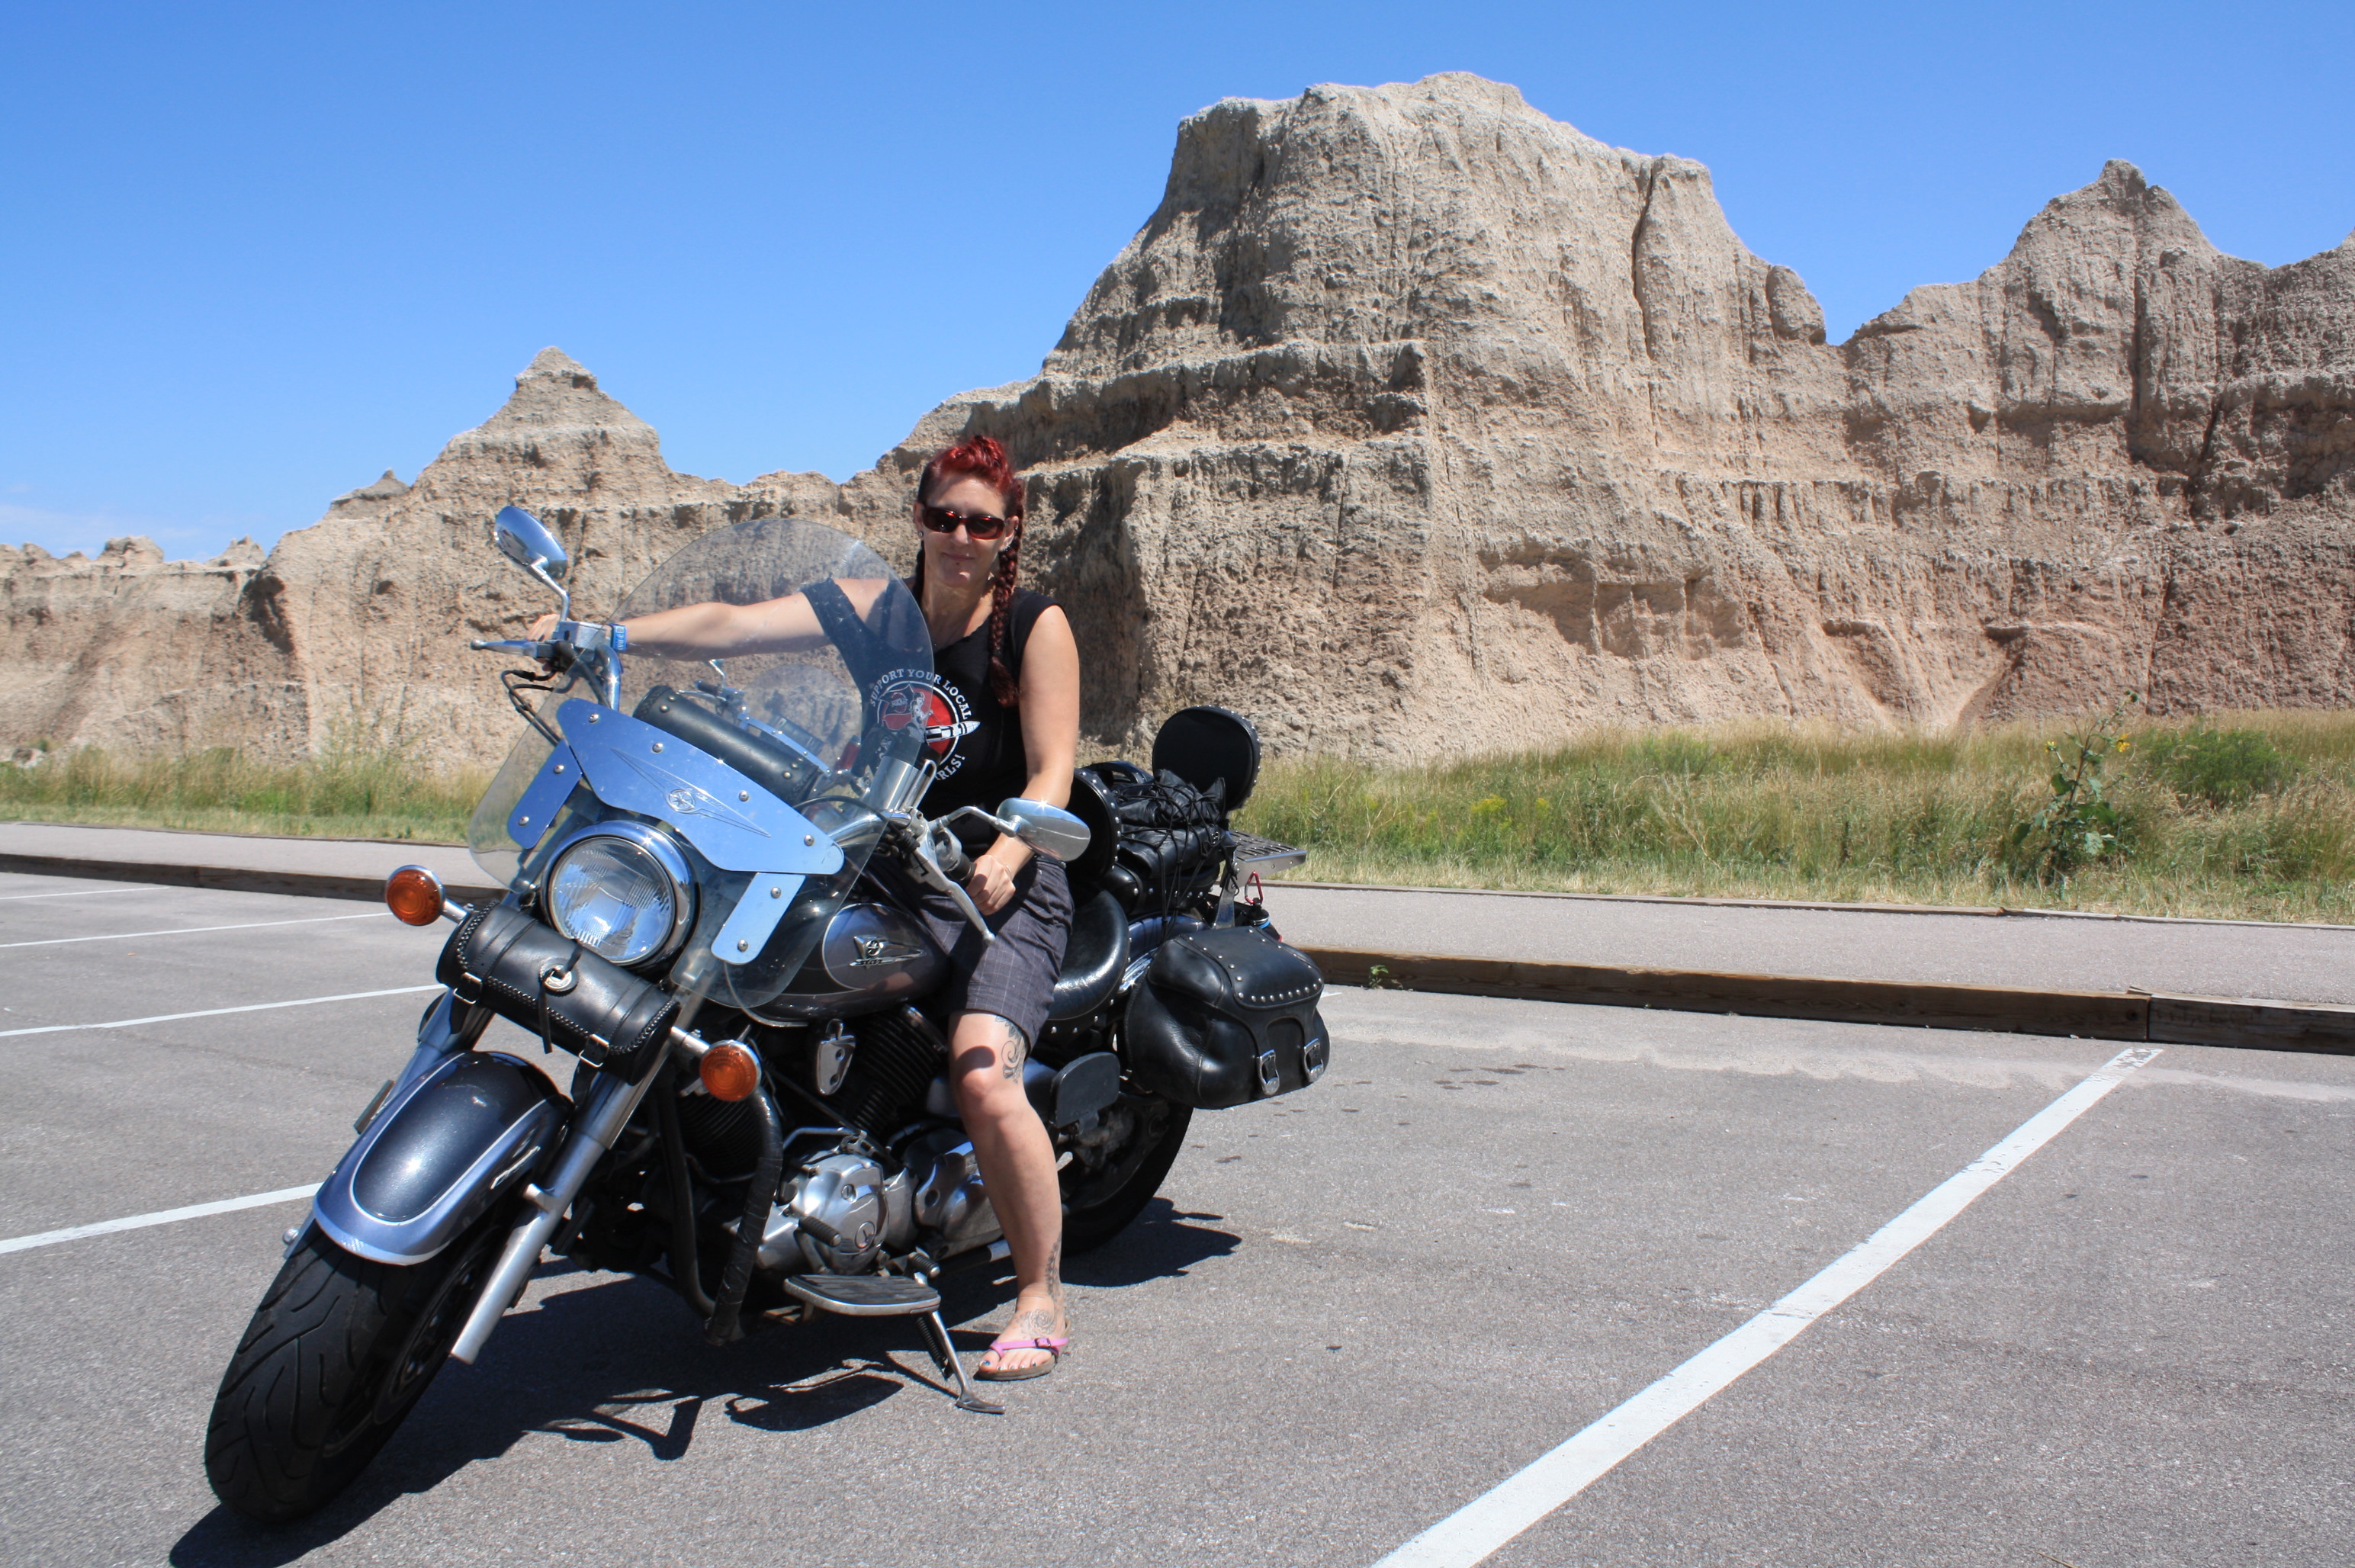 Posing at Badlands